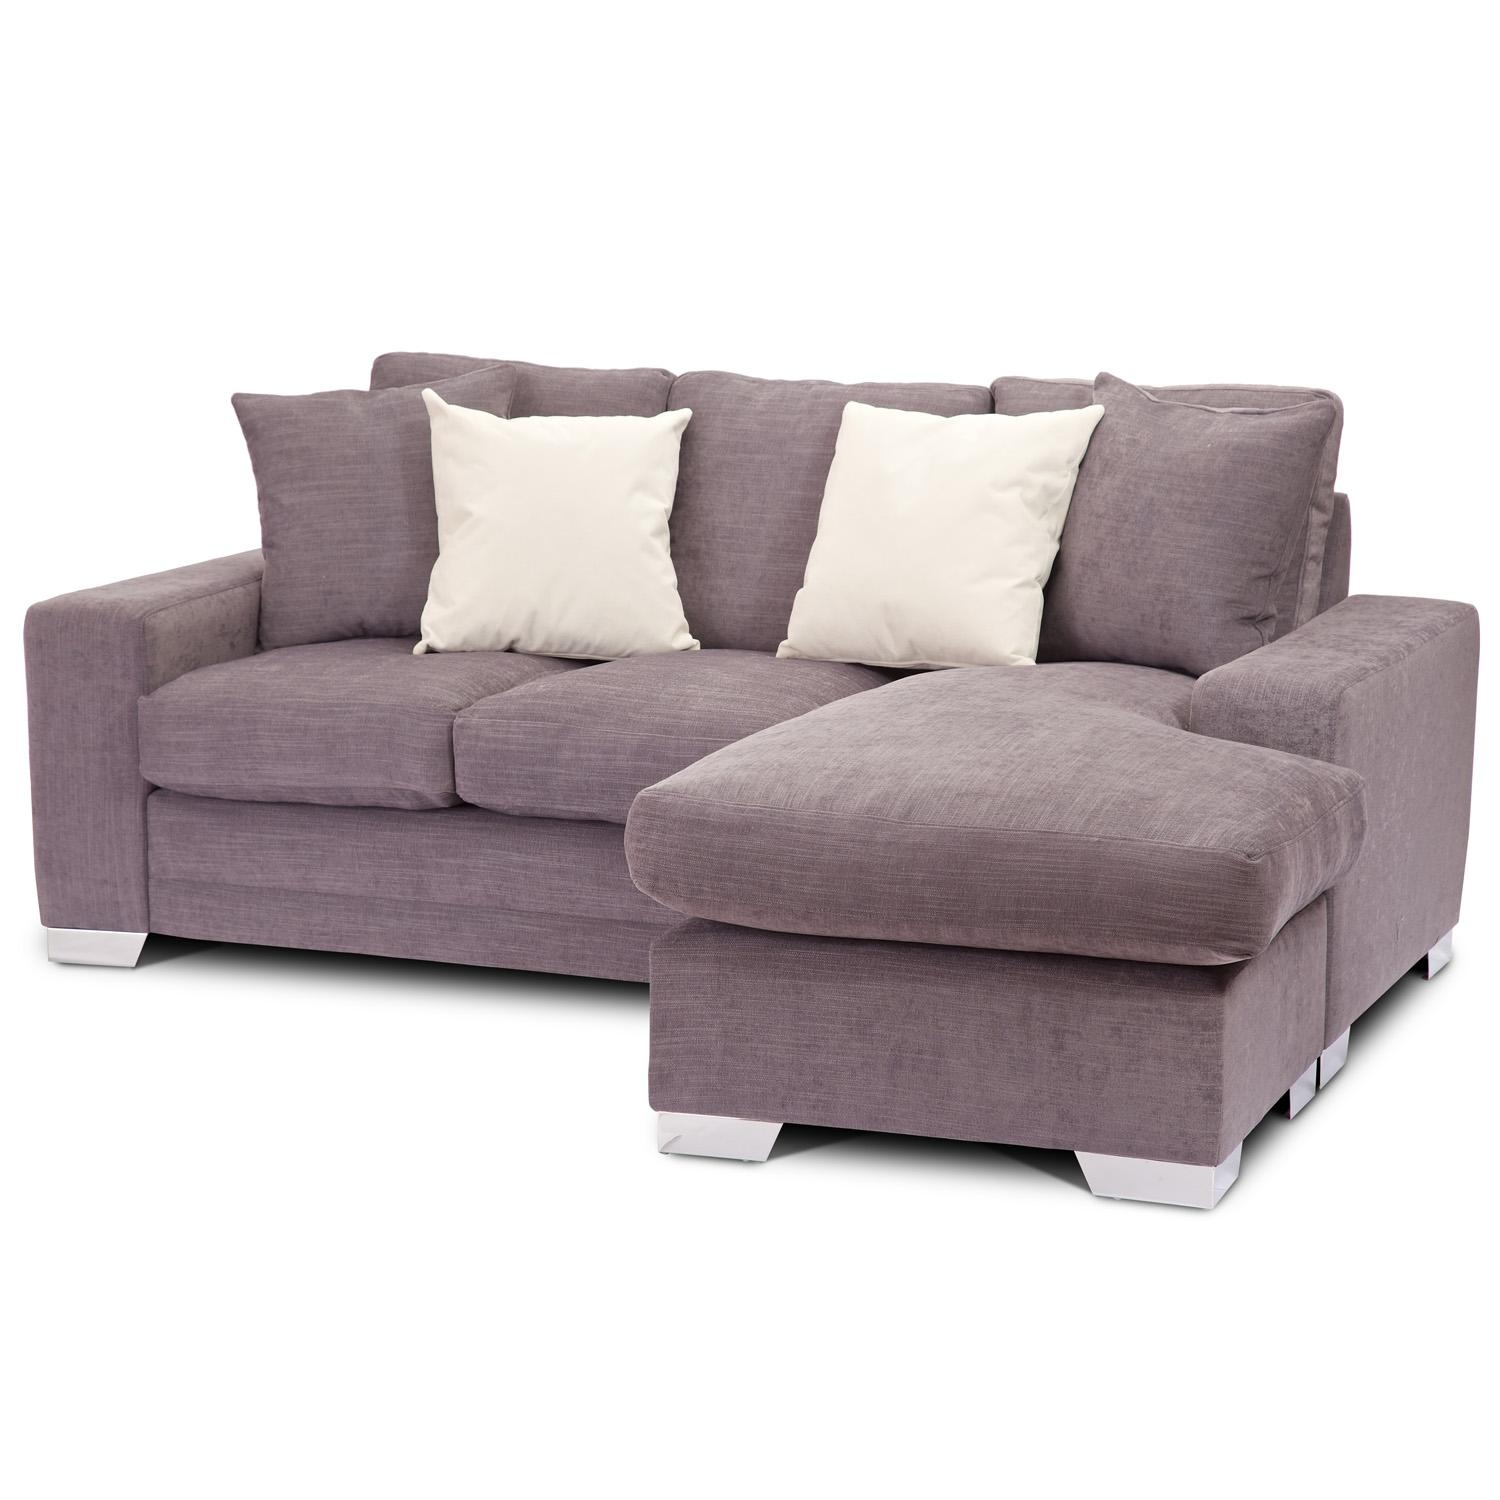 Sofas: Classic Meets Contemporary Chaise Sofa Bed For Ideal Living Throughout Chaise Longue Sofa Beds (Image 18 of 20)